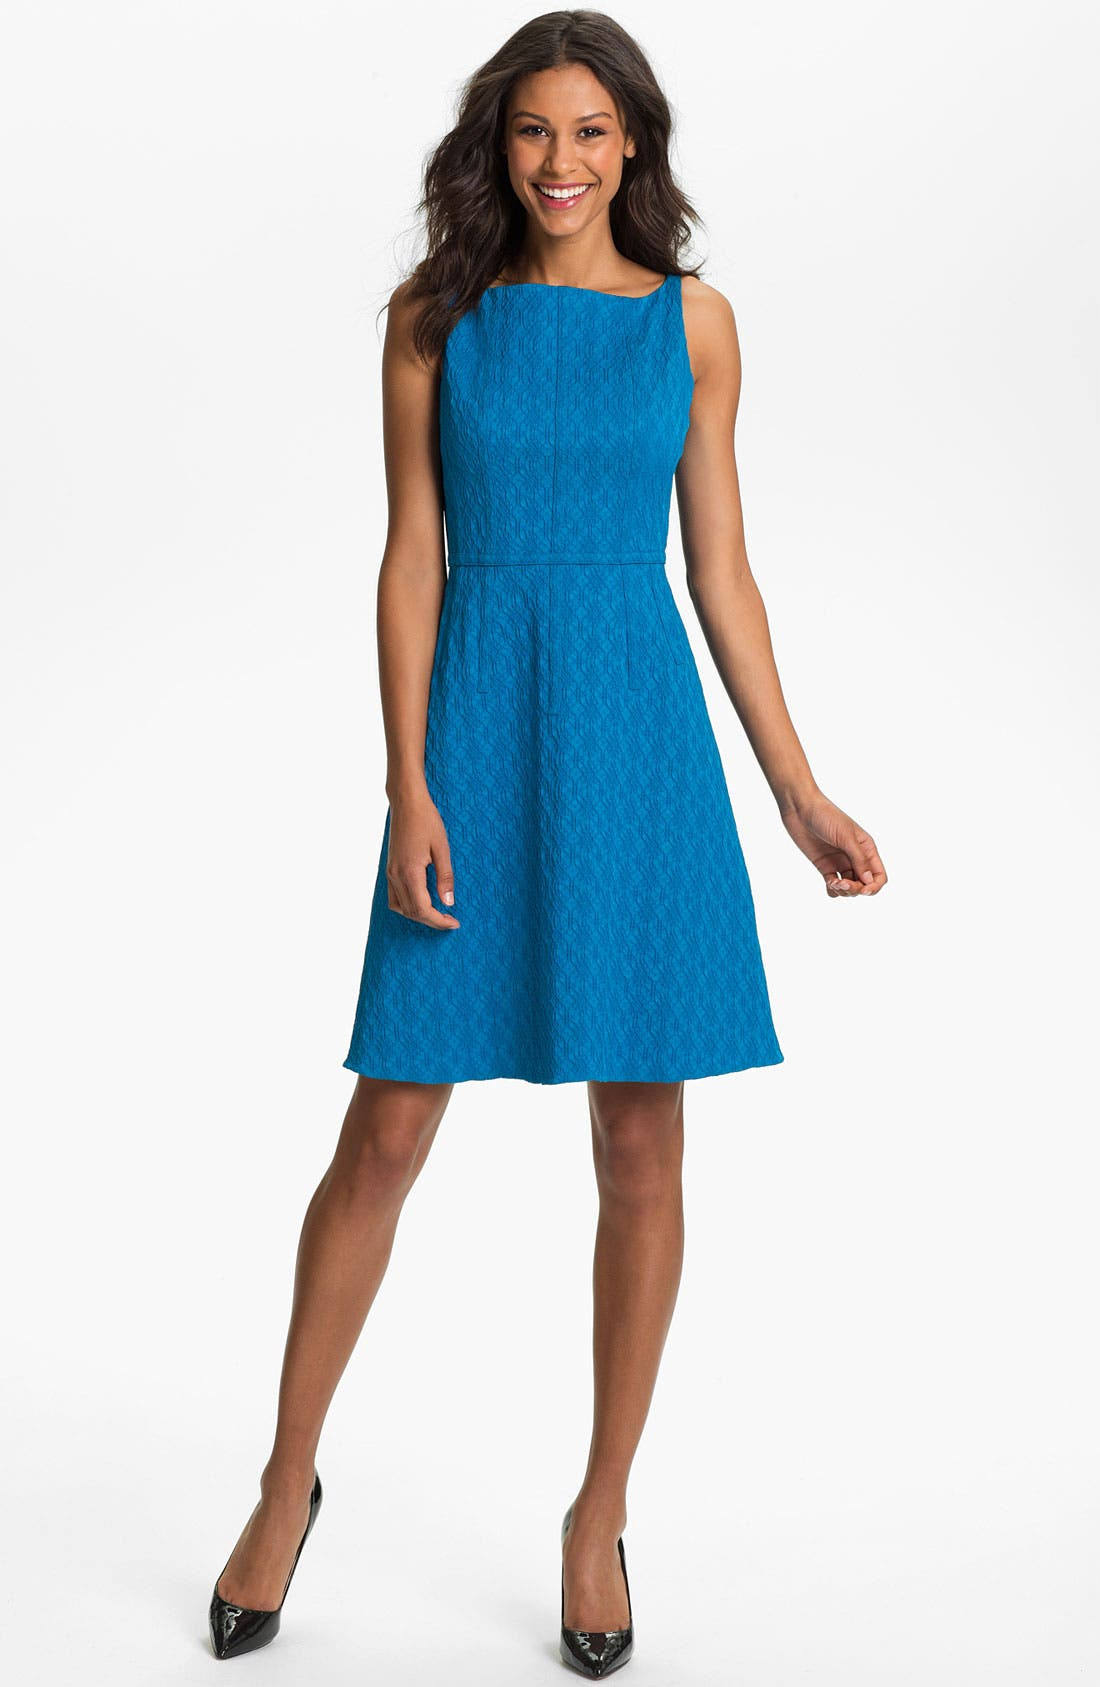 Main Image - Adrianna Papell Jacquard Fit & Flare Dress